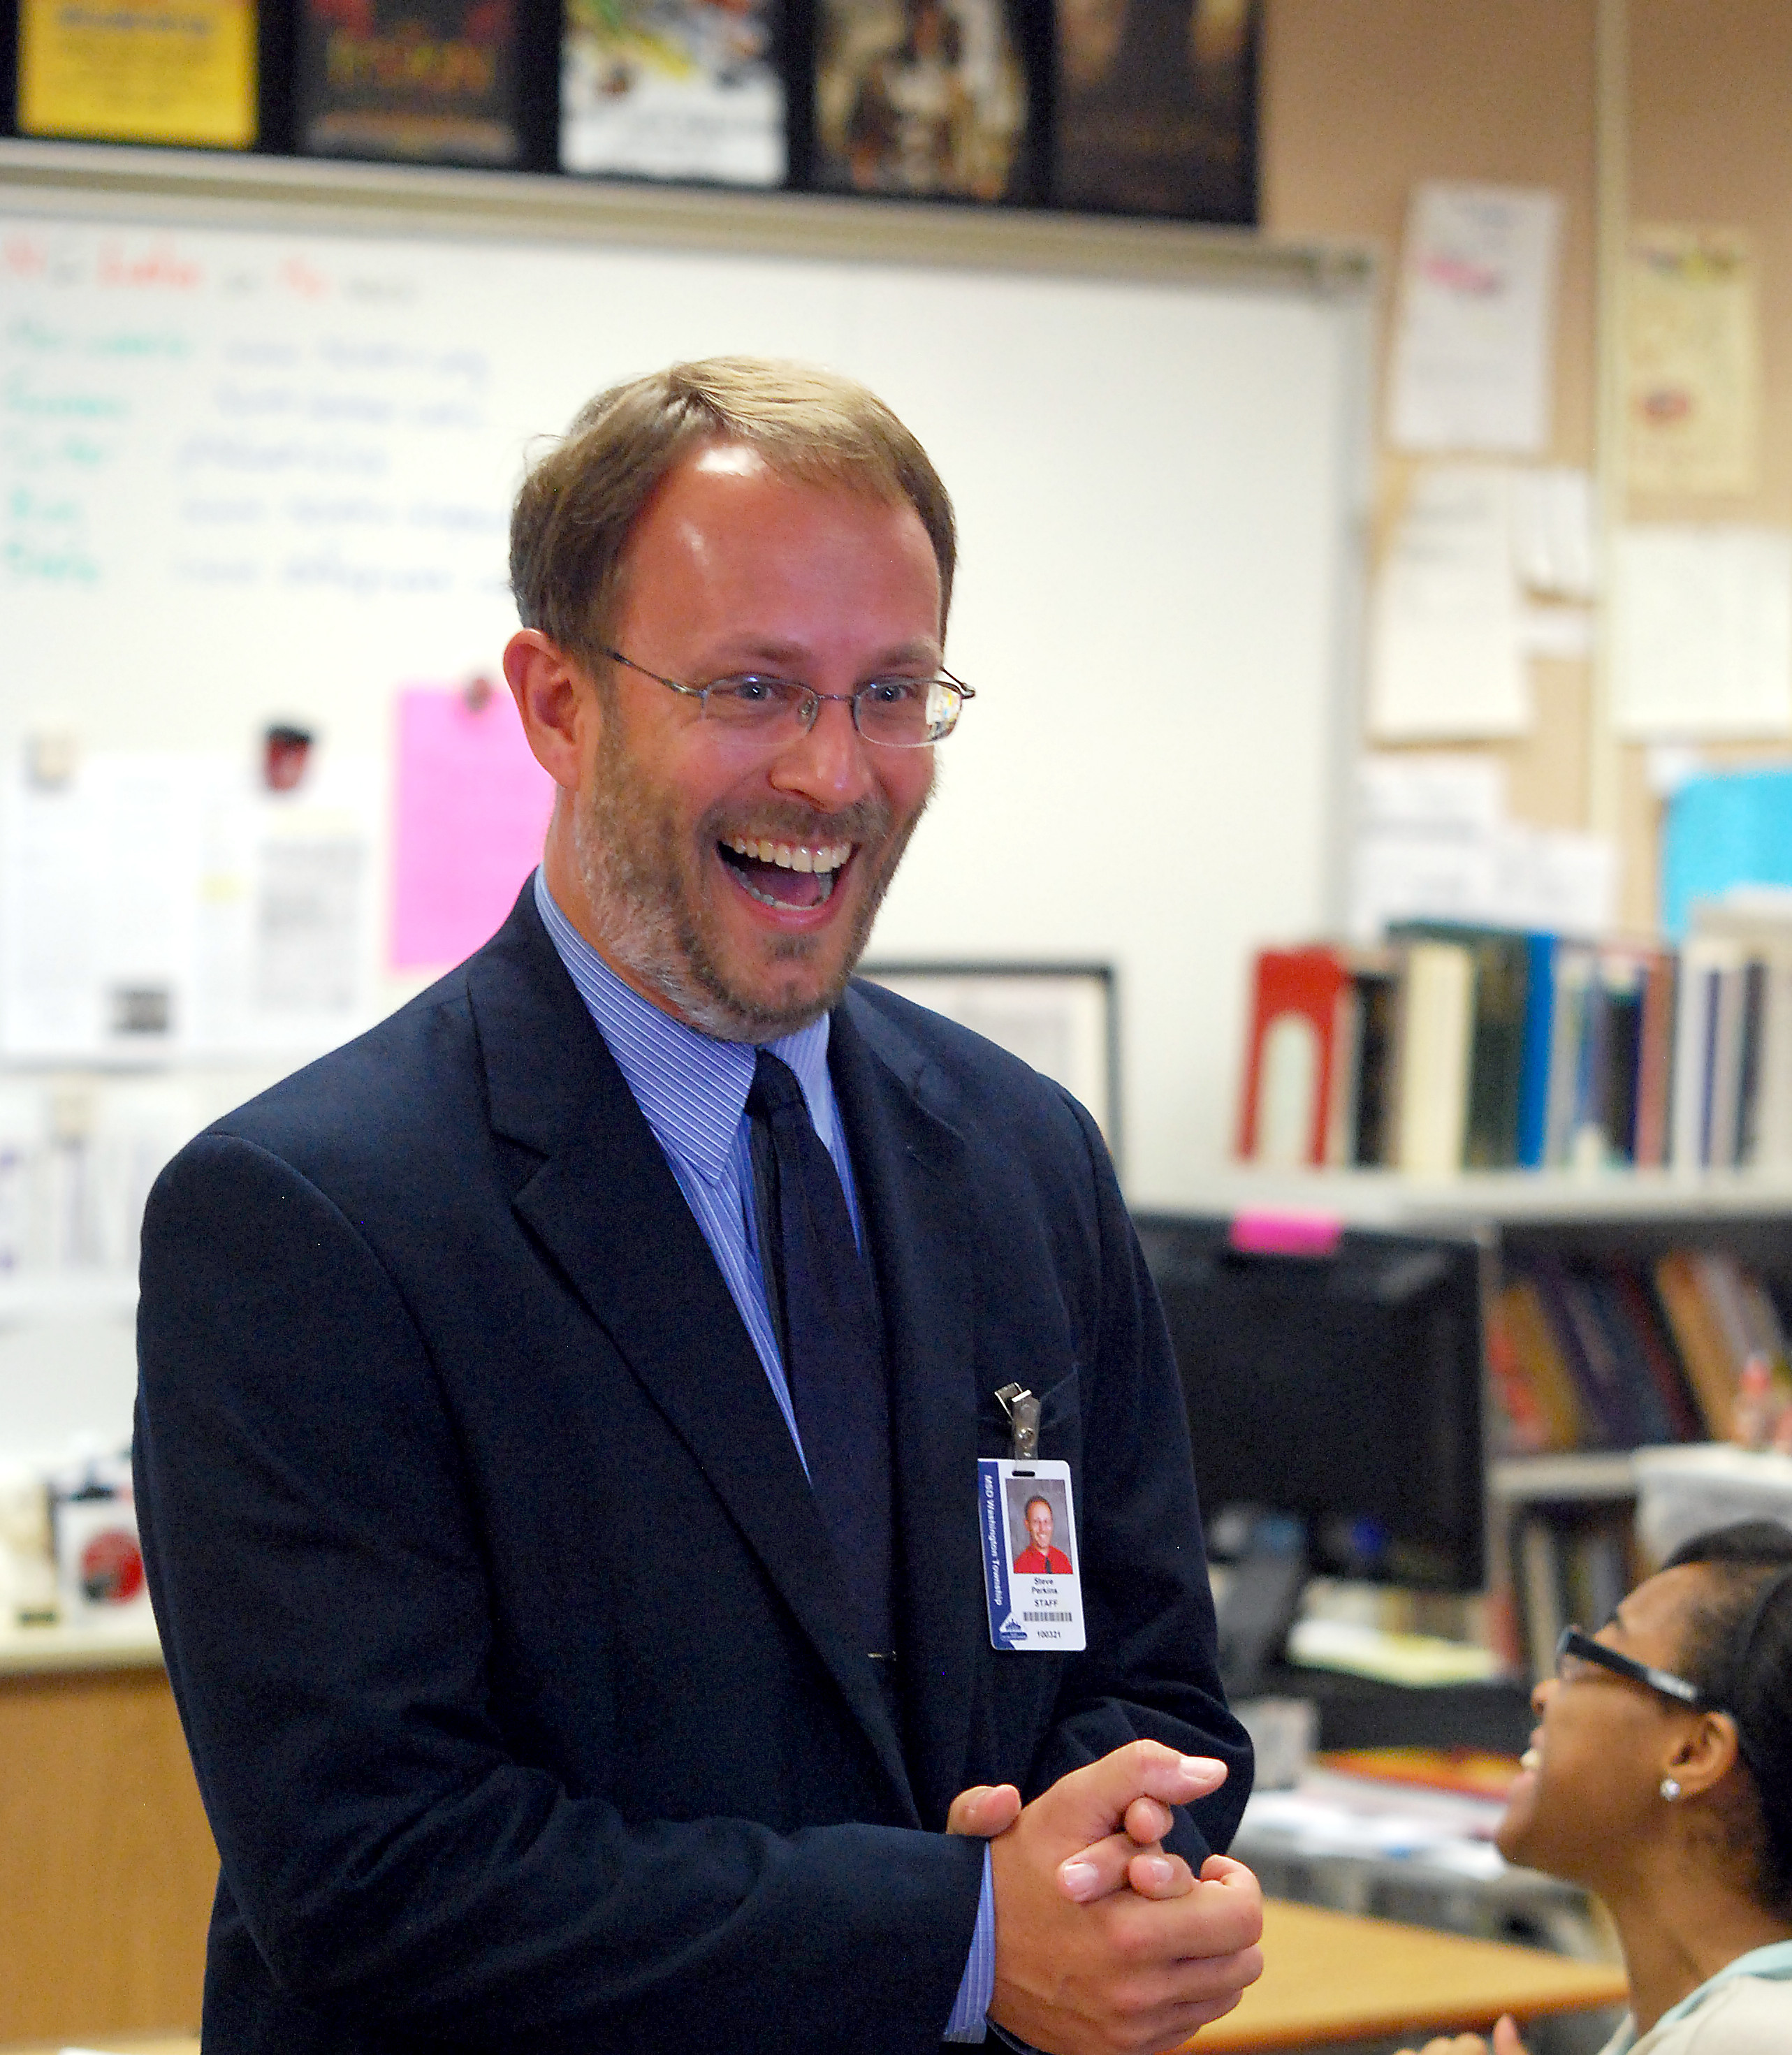 Steve Perkins gets the surprise of a lifetime as his Latin class is disrupted with the announcement of him winning Indiana Teacher of the Year on Oct. 4. (Photo by Robert Herrington)